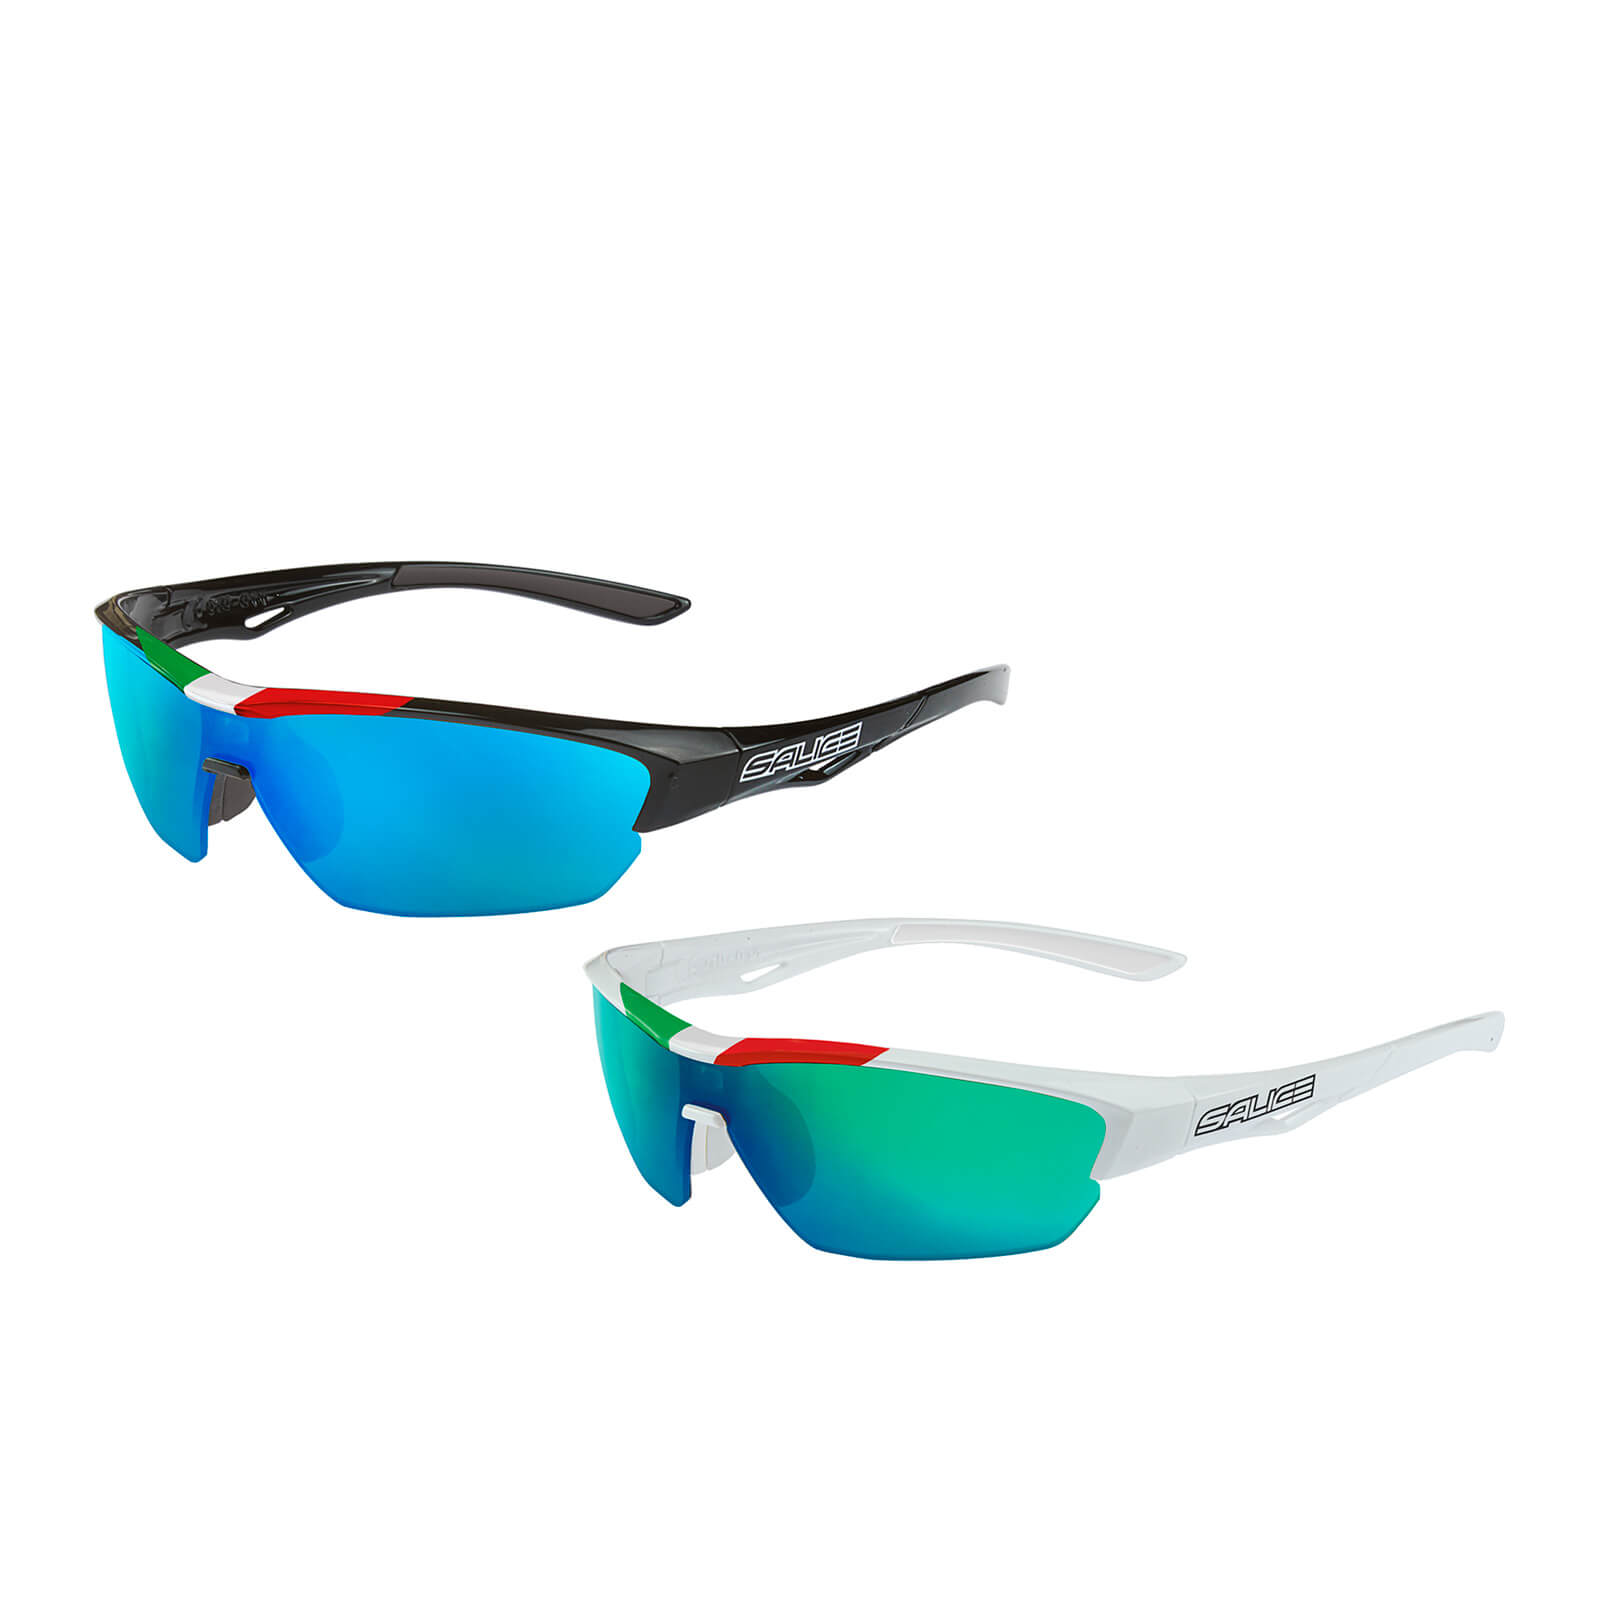 Salice 011 Italian Edition RW Mirror Sunglasses